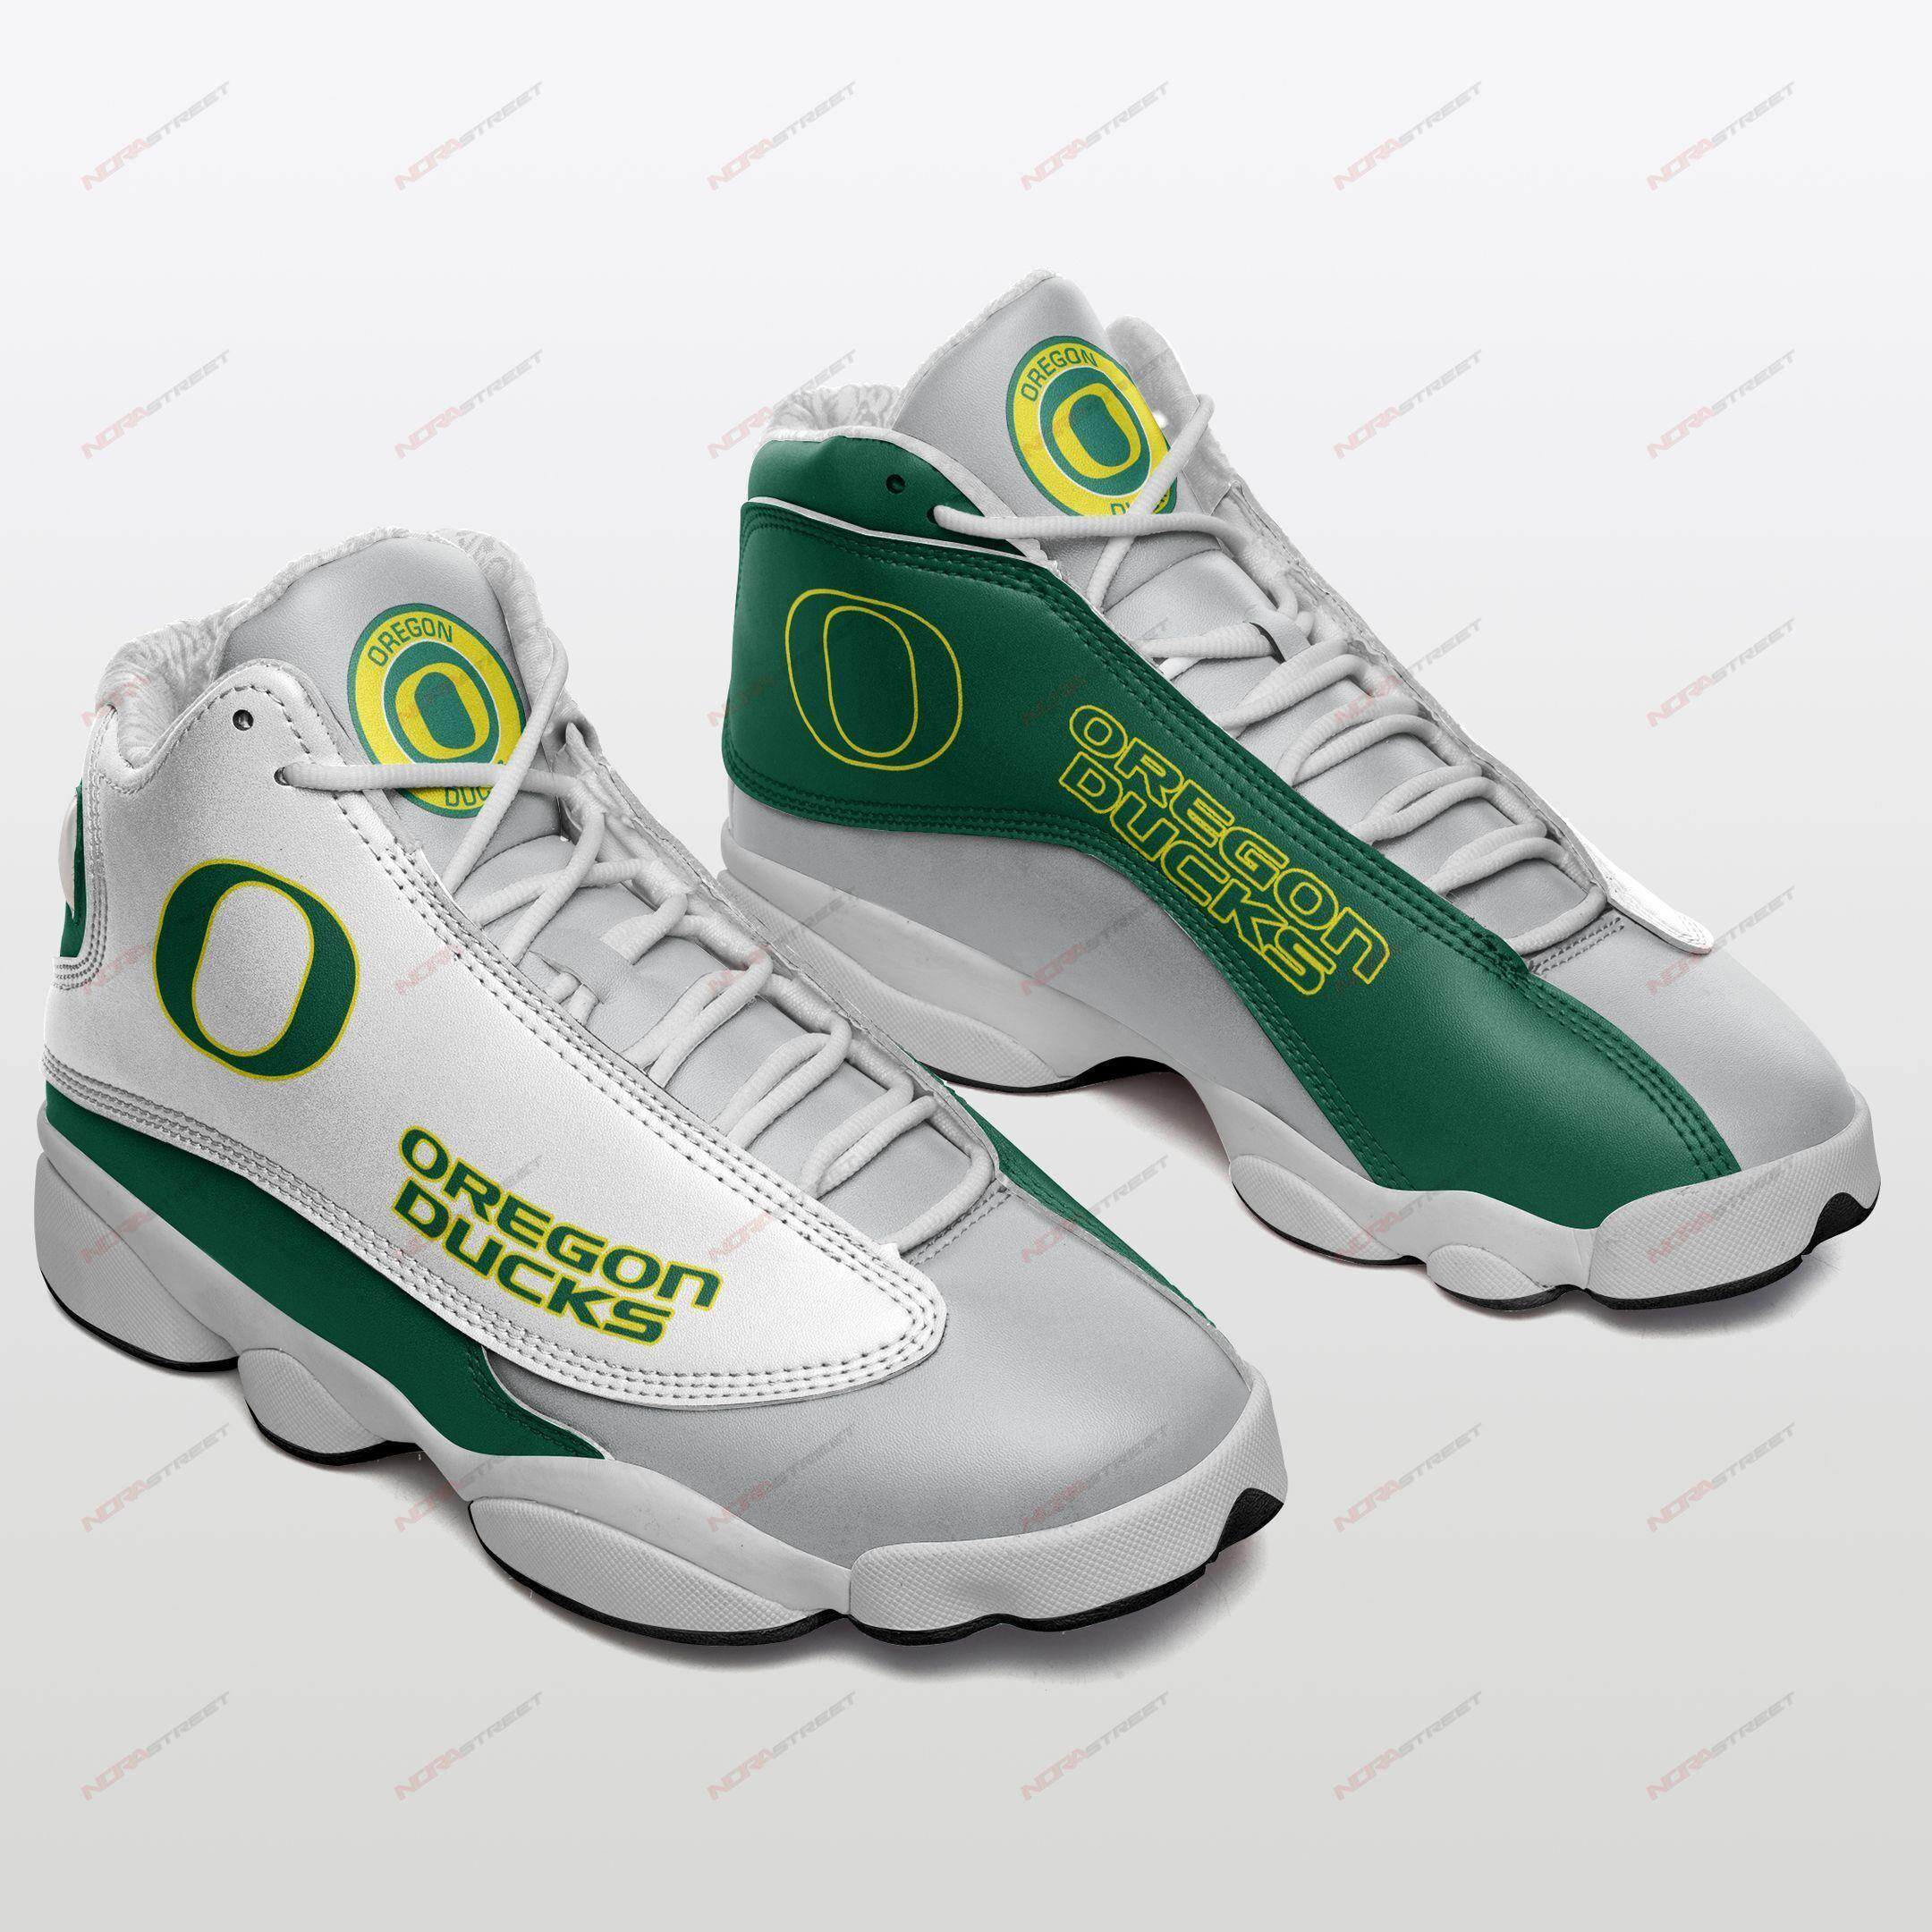 Oregon Ducks Air Jordan 13 Sneakers Sport Shoes Full Size